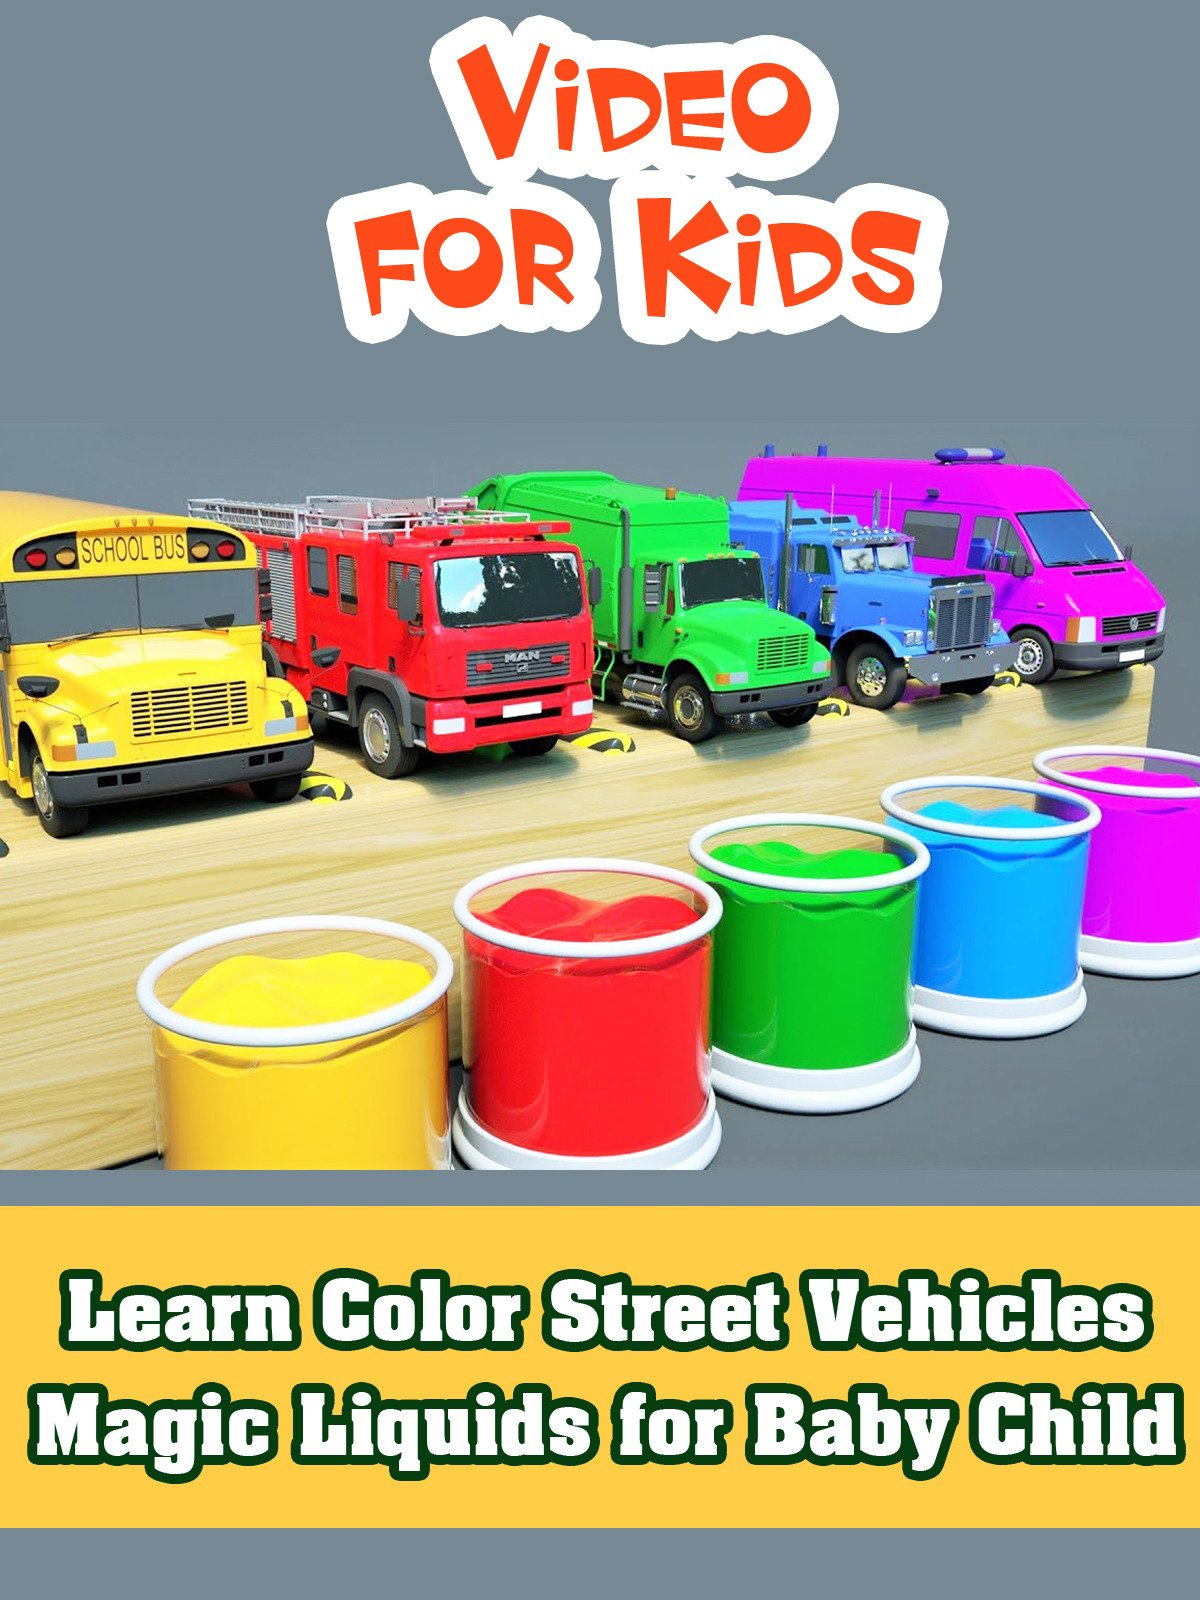 Learn Color Street Vehicles Magic Liquids for Baby Child